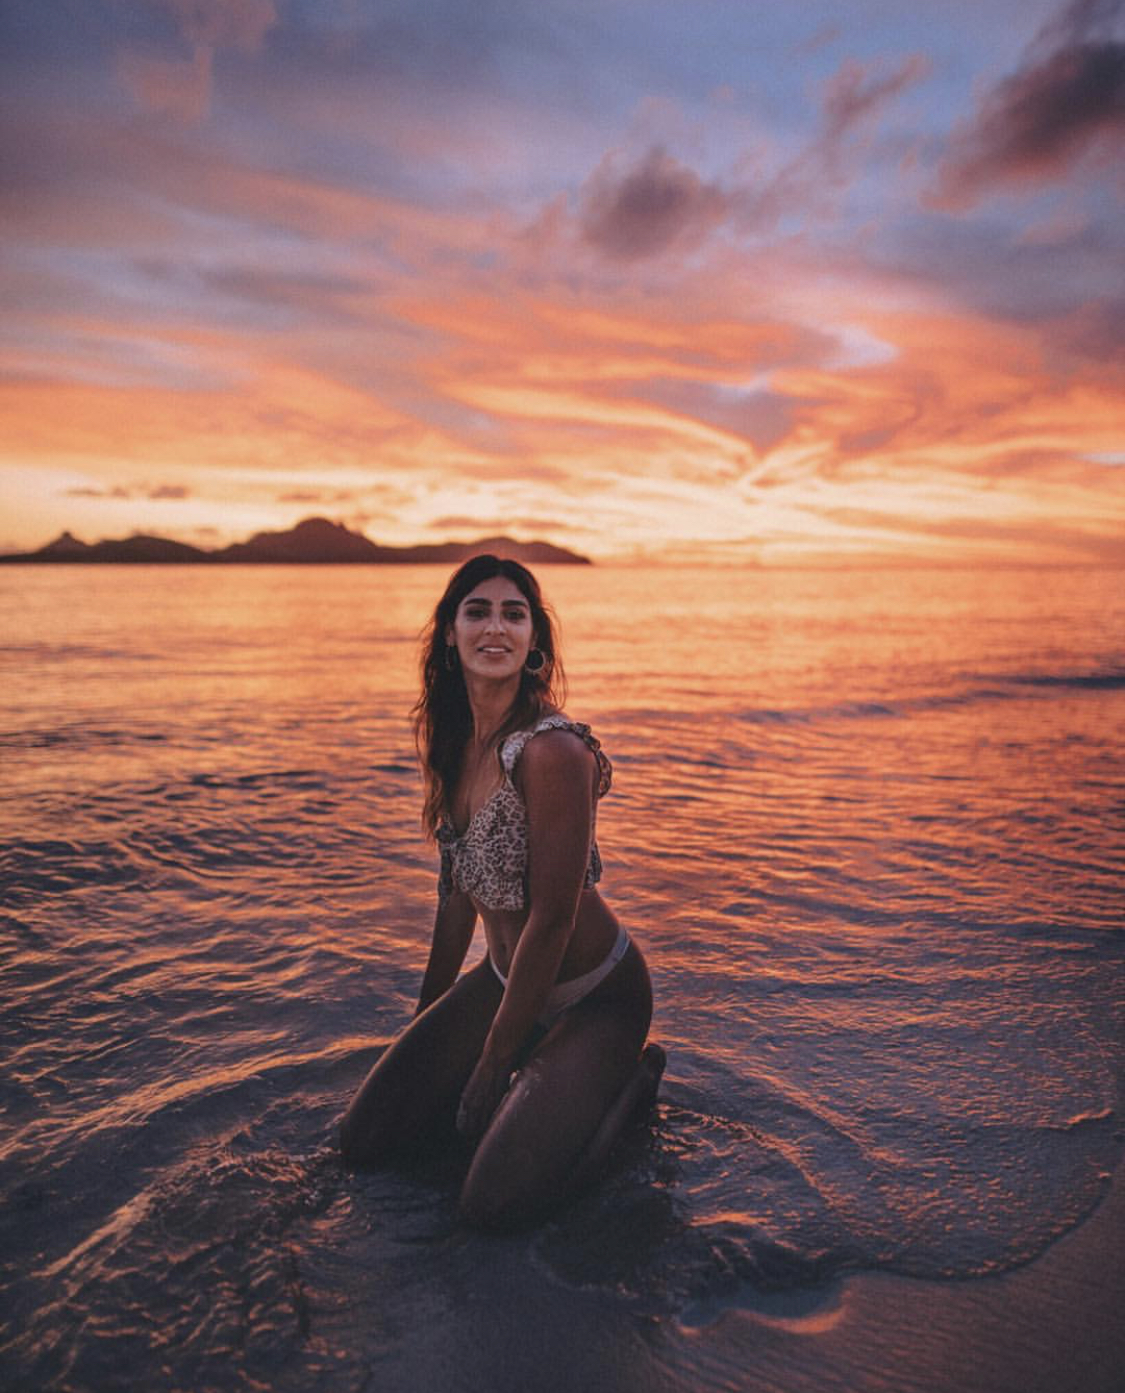 A woman posing on the beach at sunset in Fiji